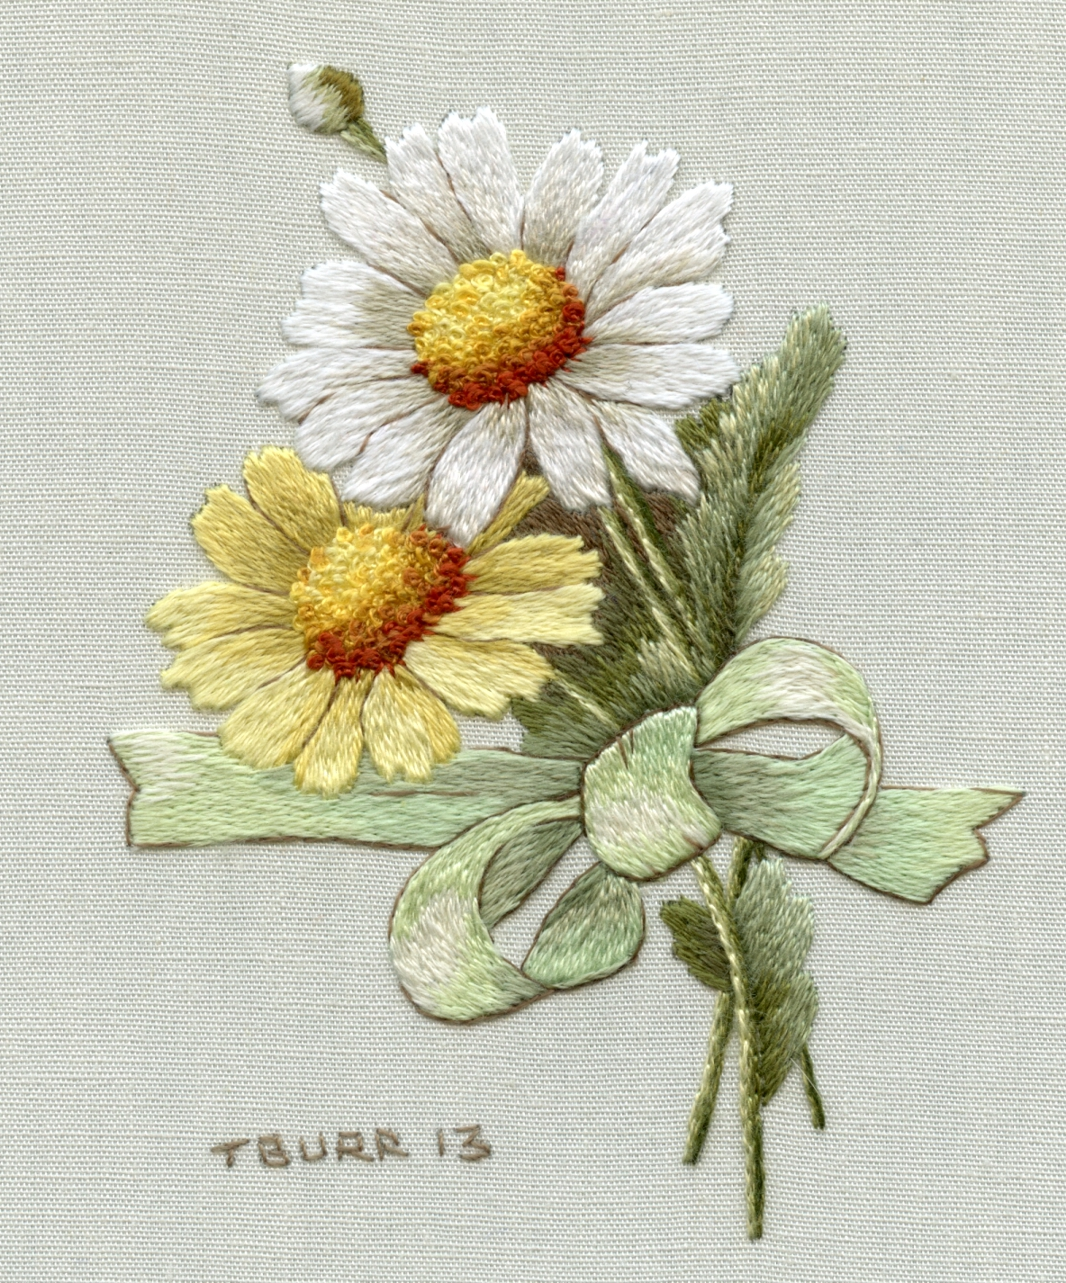 New Ribbon Embroidery Designs